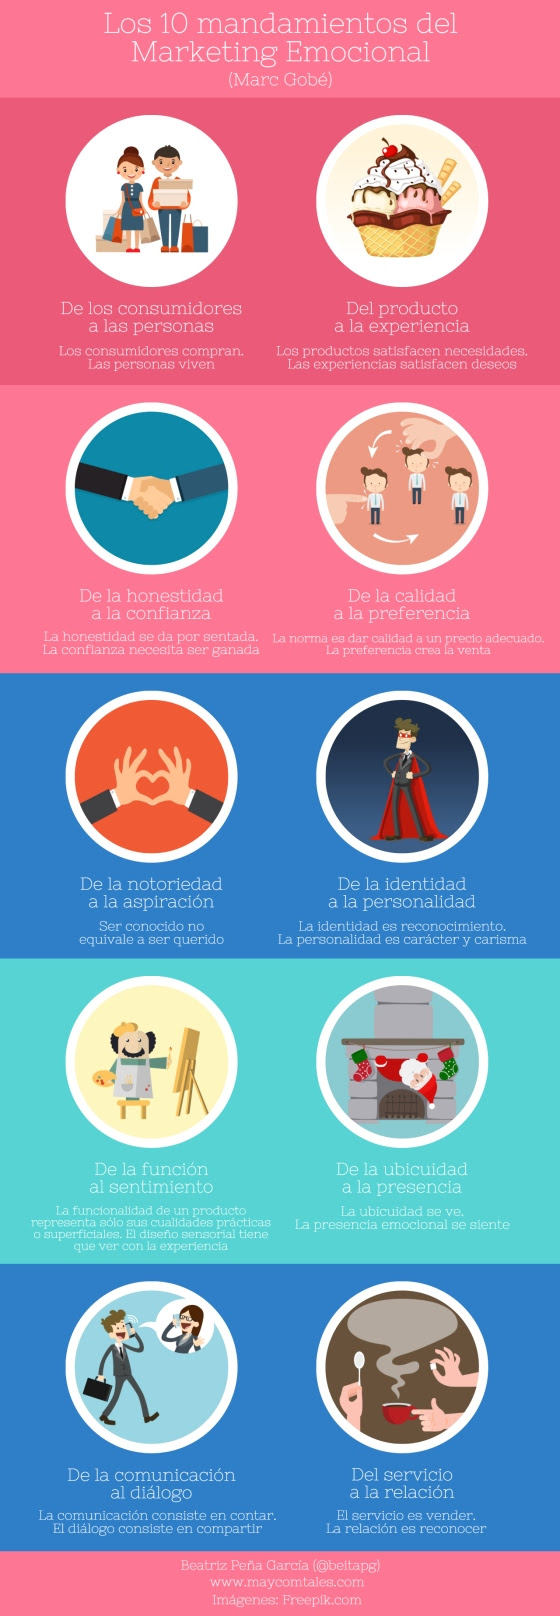 10 mandamientos del Marketing Emocional